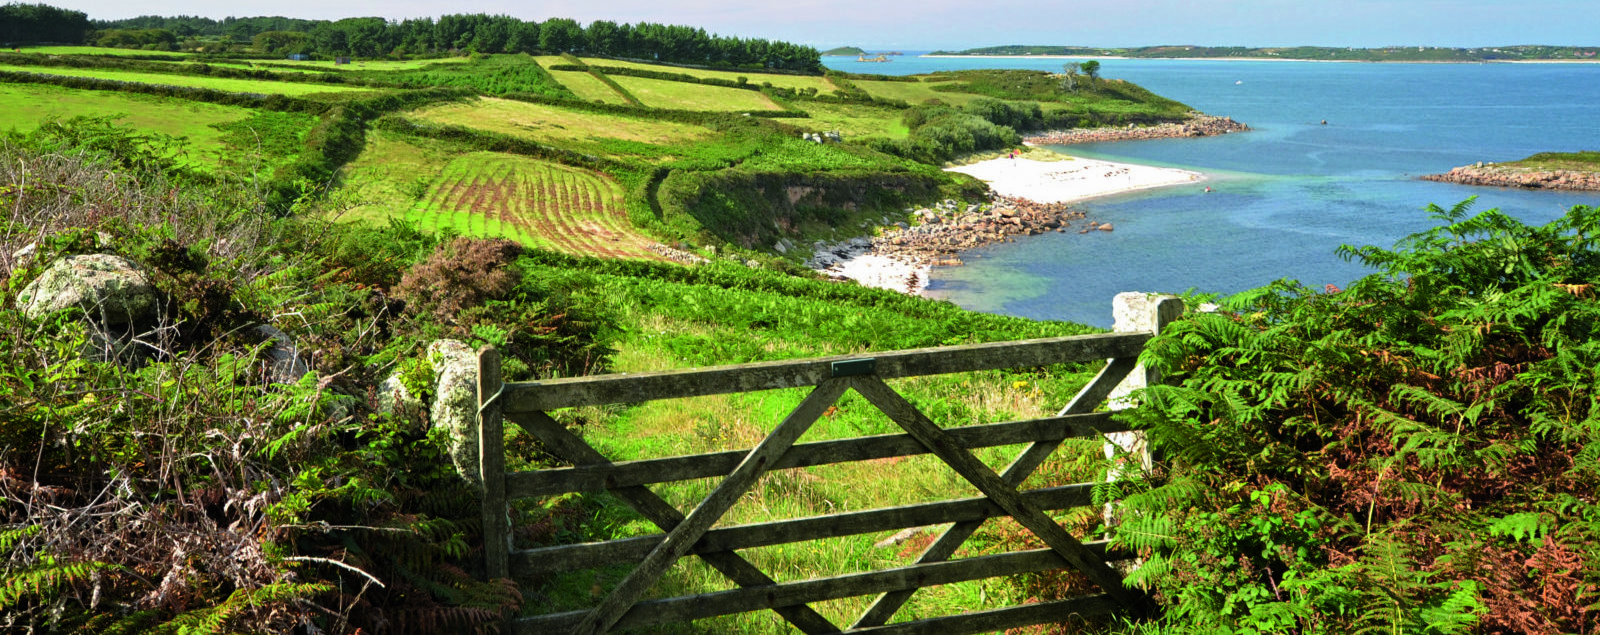 A wooden gate leads to green fields overlooking clear blue waters and white sand beaches